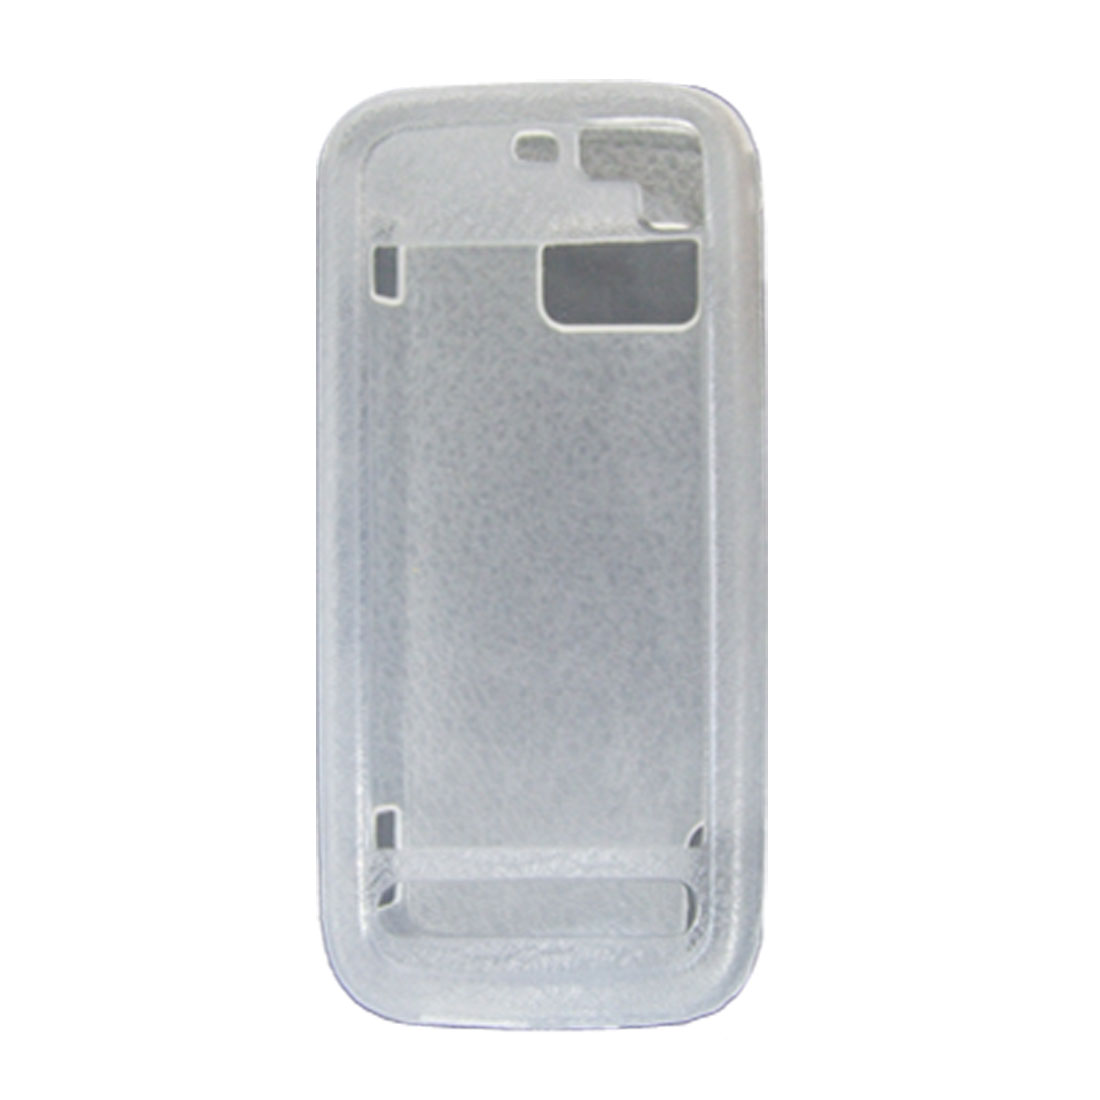 Frosted Clear White Soft Plastic Case Cover w/ Screen Visor for Nokia 5800